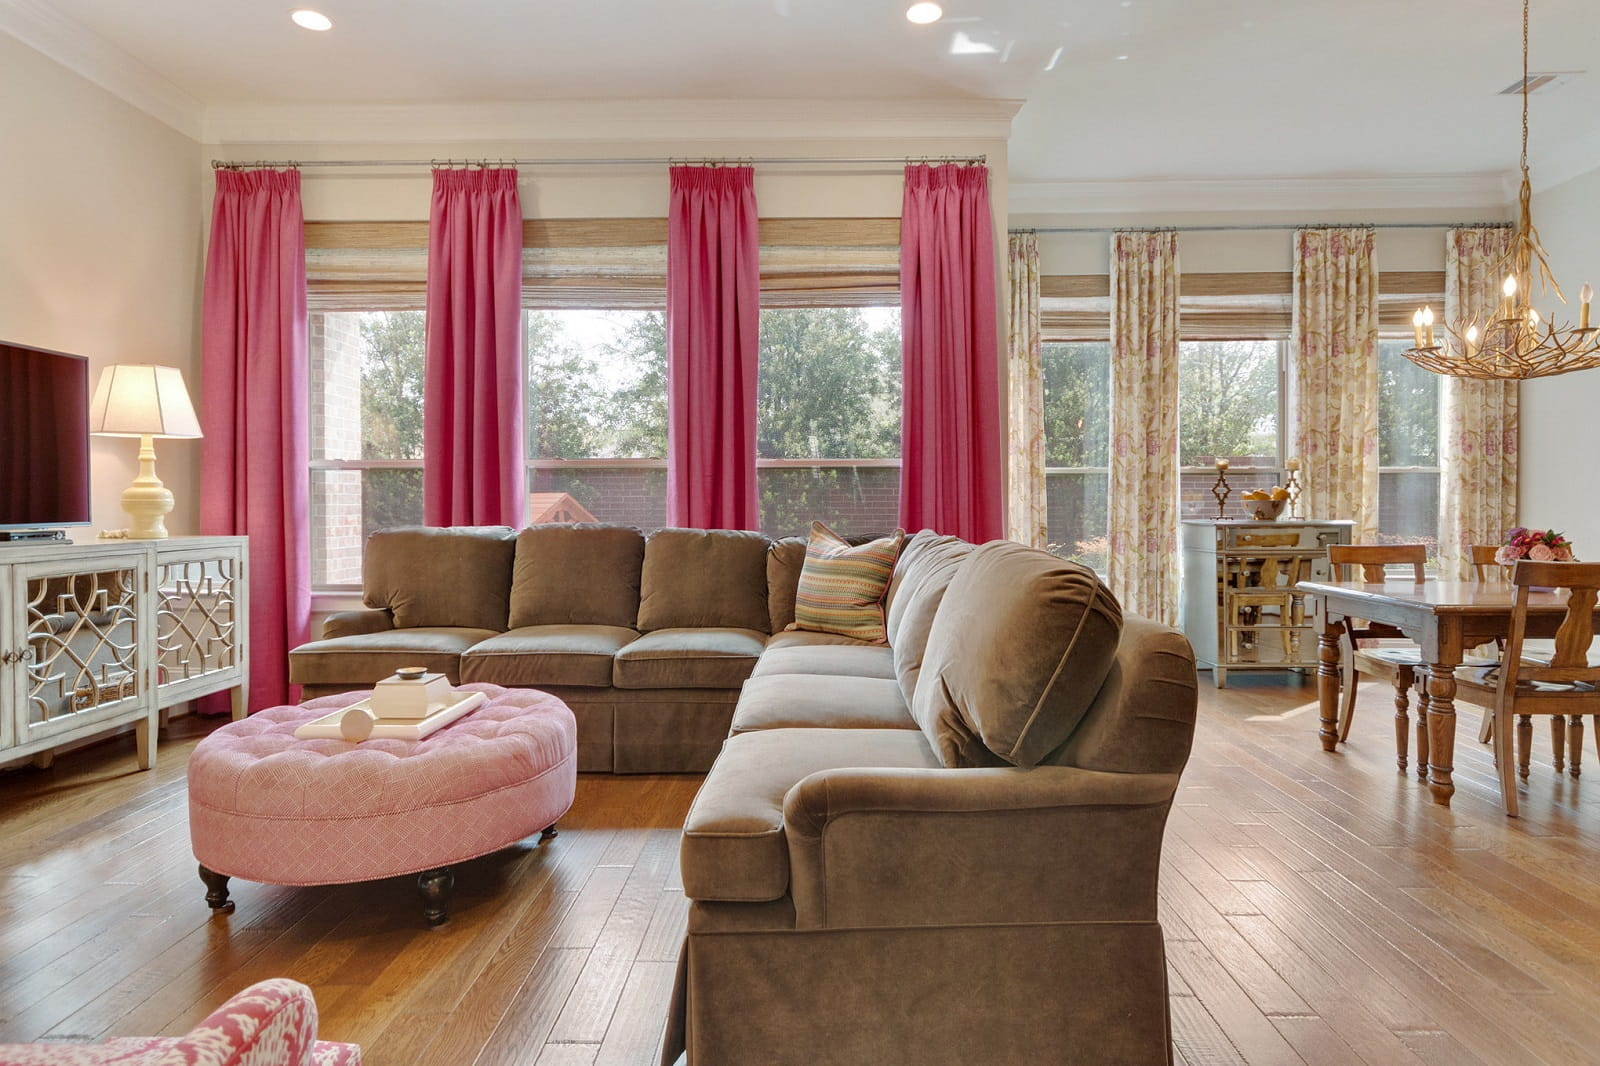 Real Estate Photographers in Sugar Land - TX - Living Area View